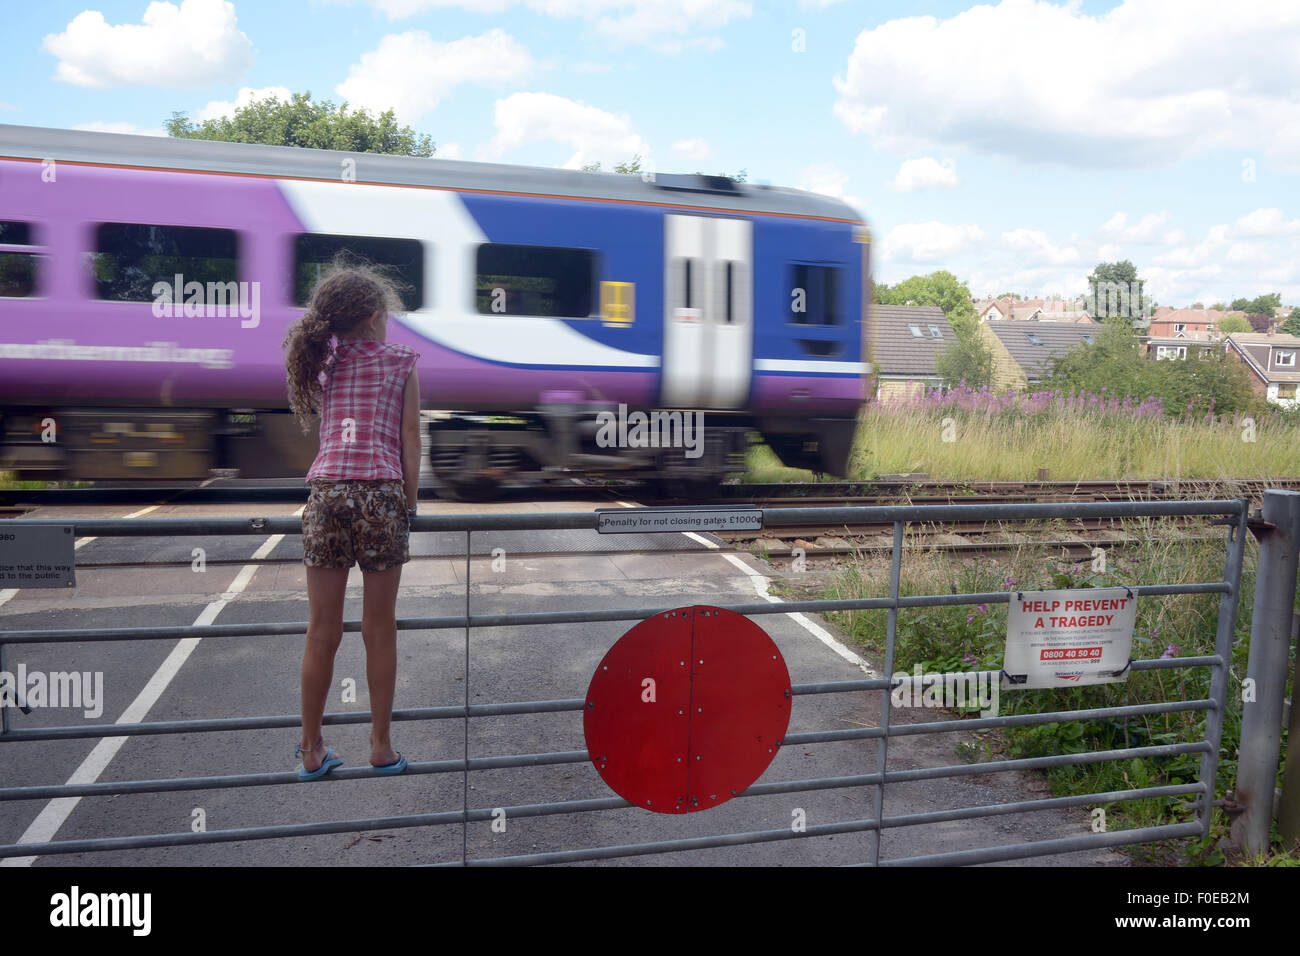 A young girl climbs on a gate at a level crossing to watch the trains go past - Stock Image